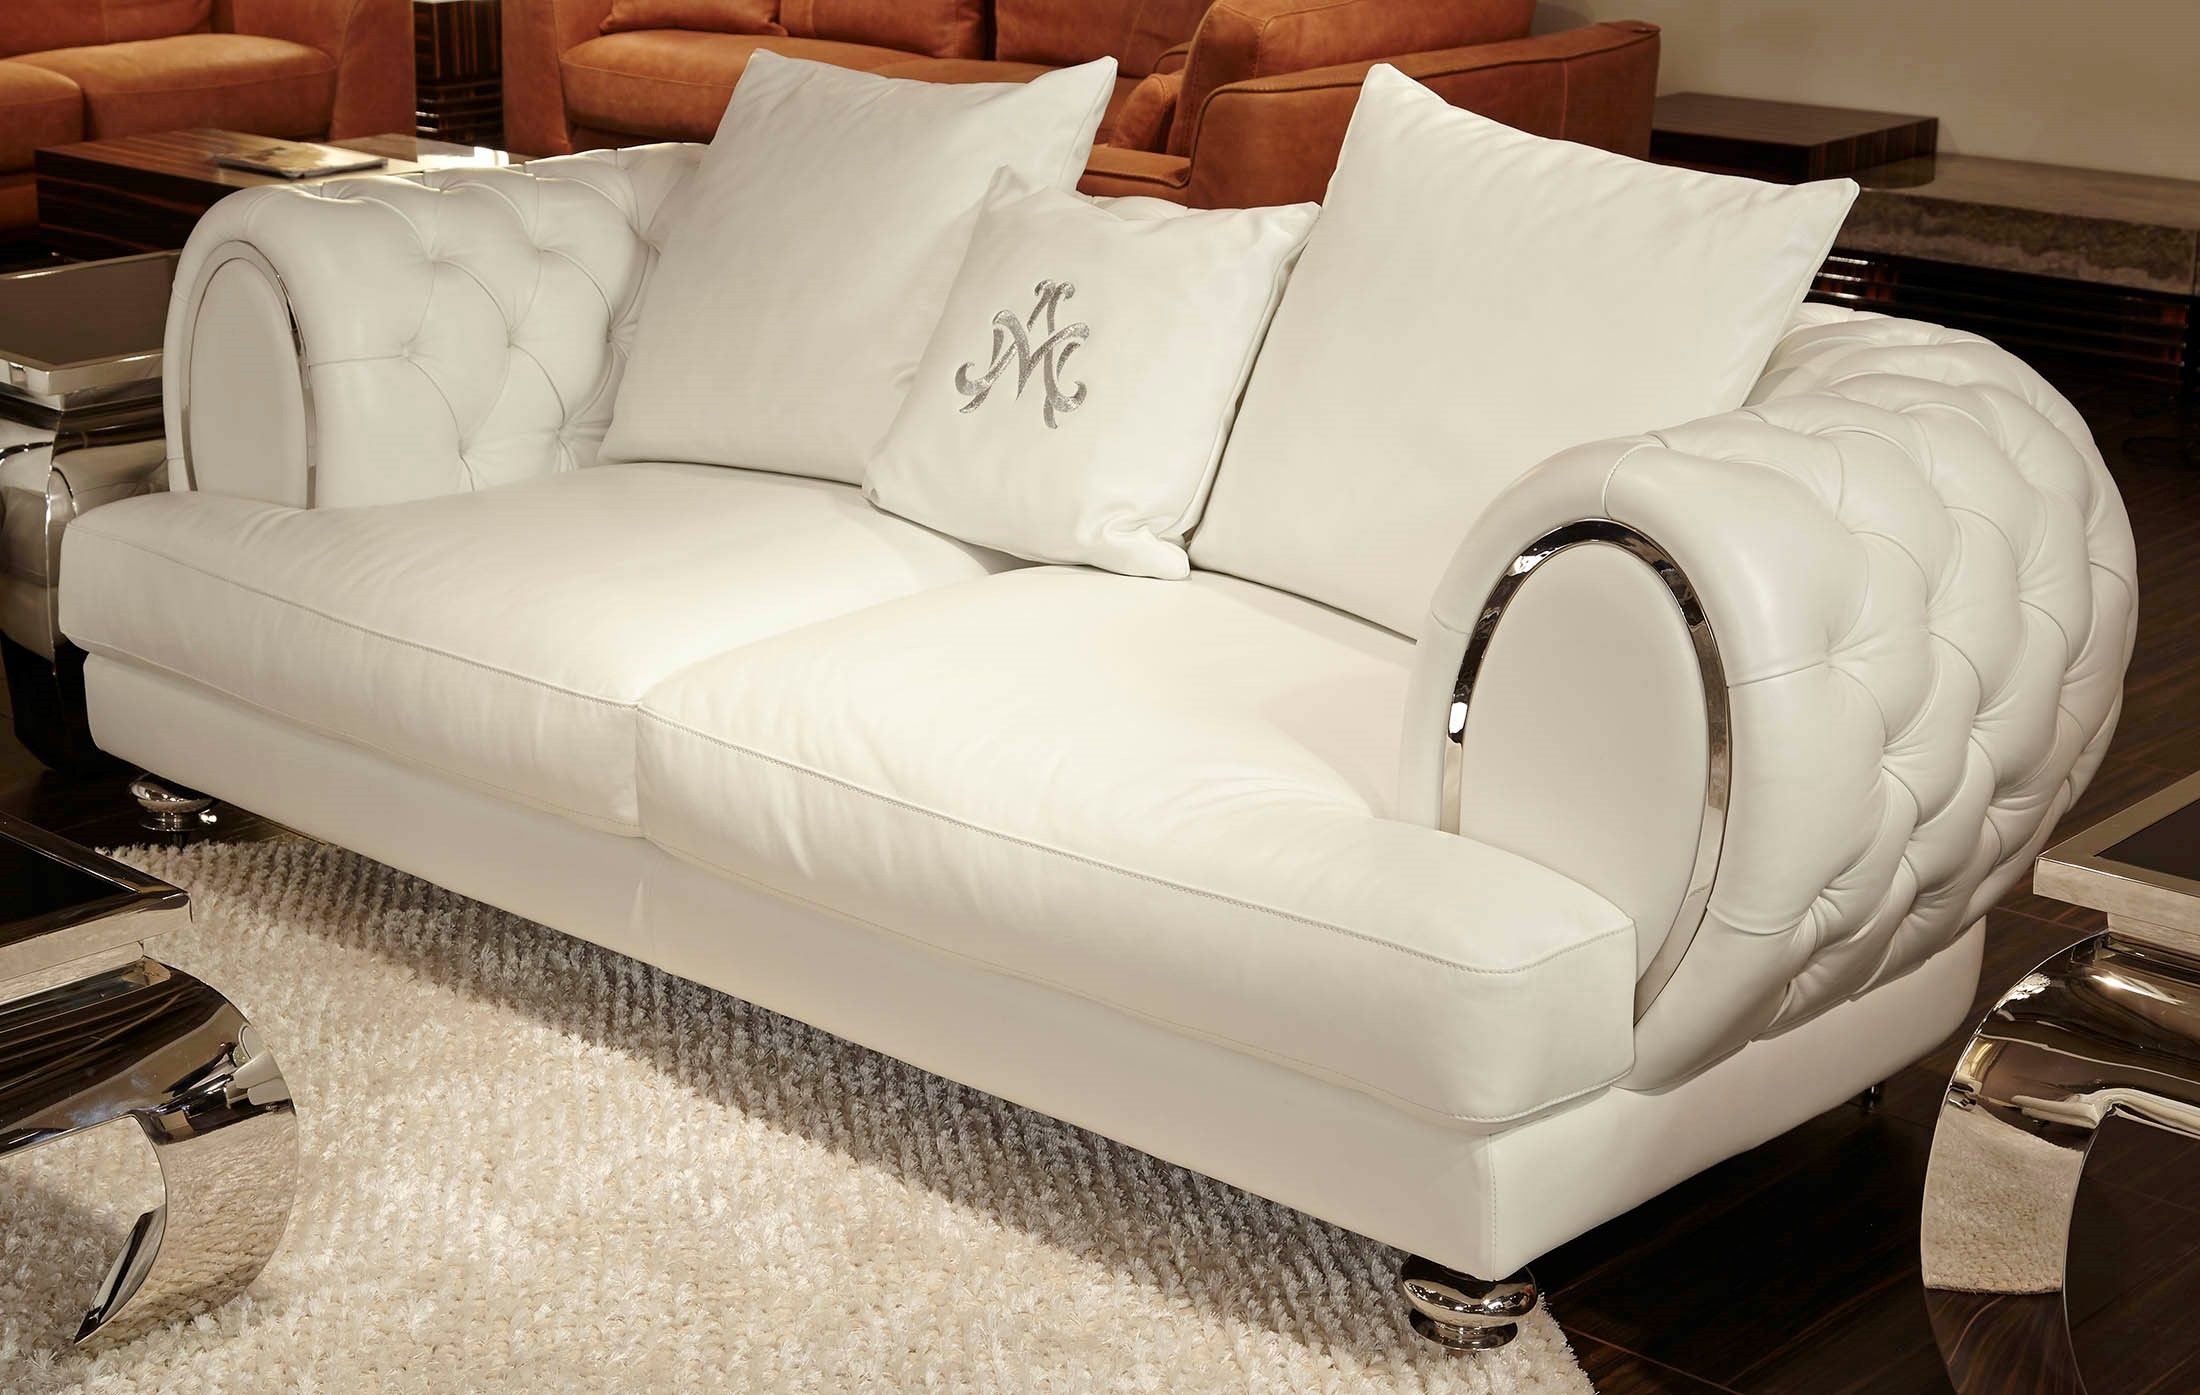 luxury sofas at target inspiration-New sofas at Target Décor